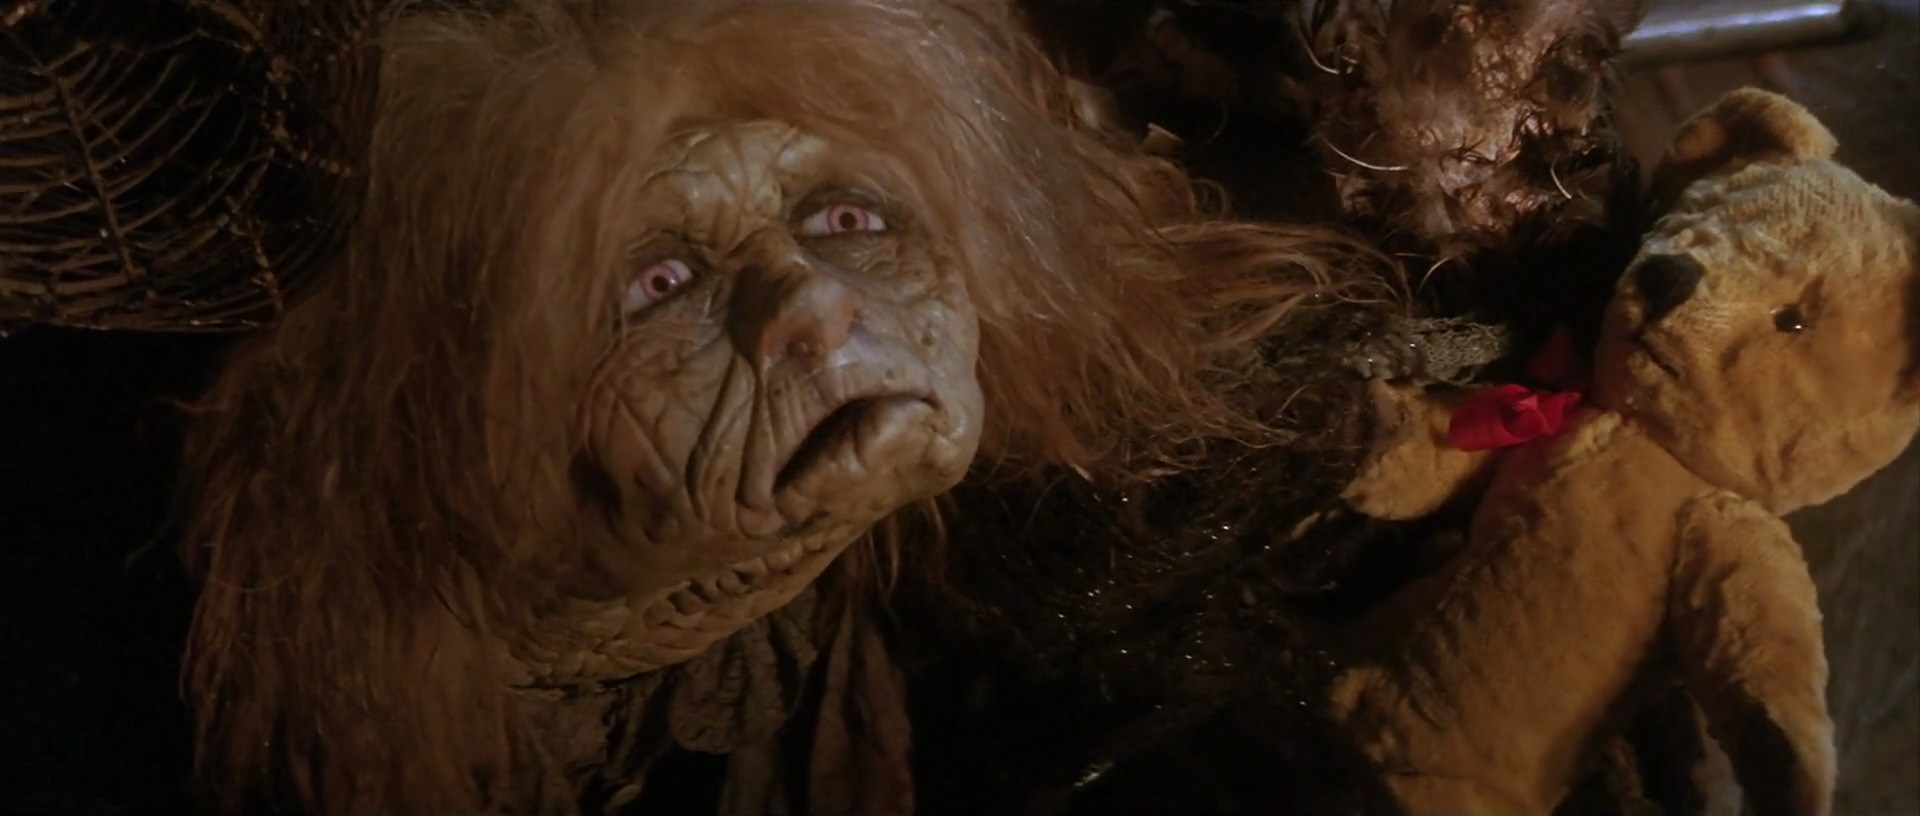 labyrinth-movie-screencaps.com-8165.jpg